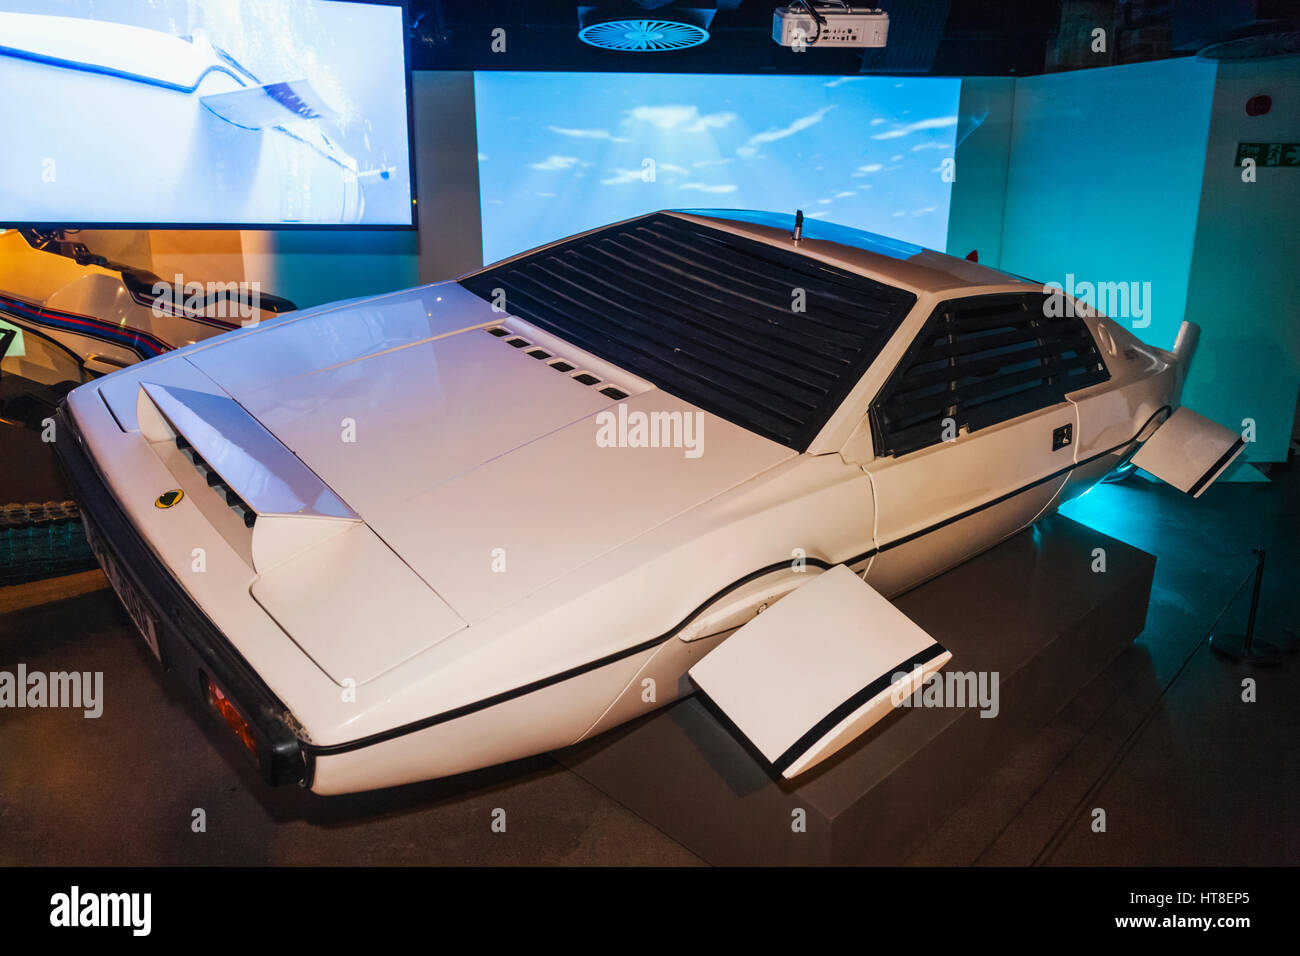 England, London, Covent Garden, London Film Museum, Lotus Esprit S1 Car from The James Bond Movie The Spy Who Loved - Stock Image